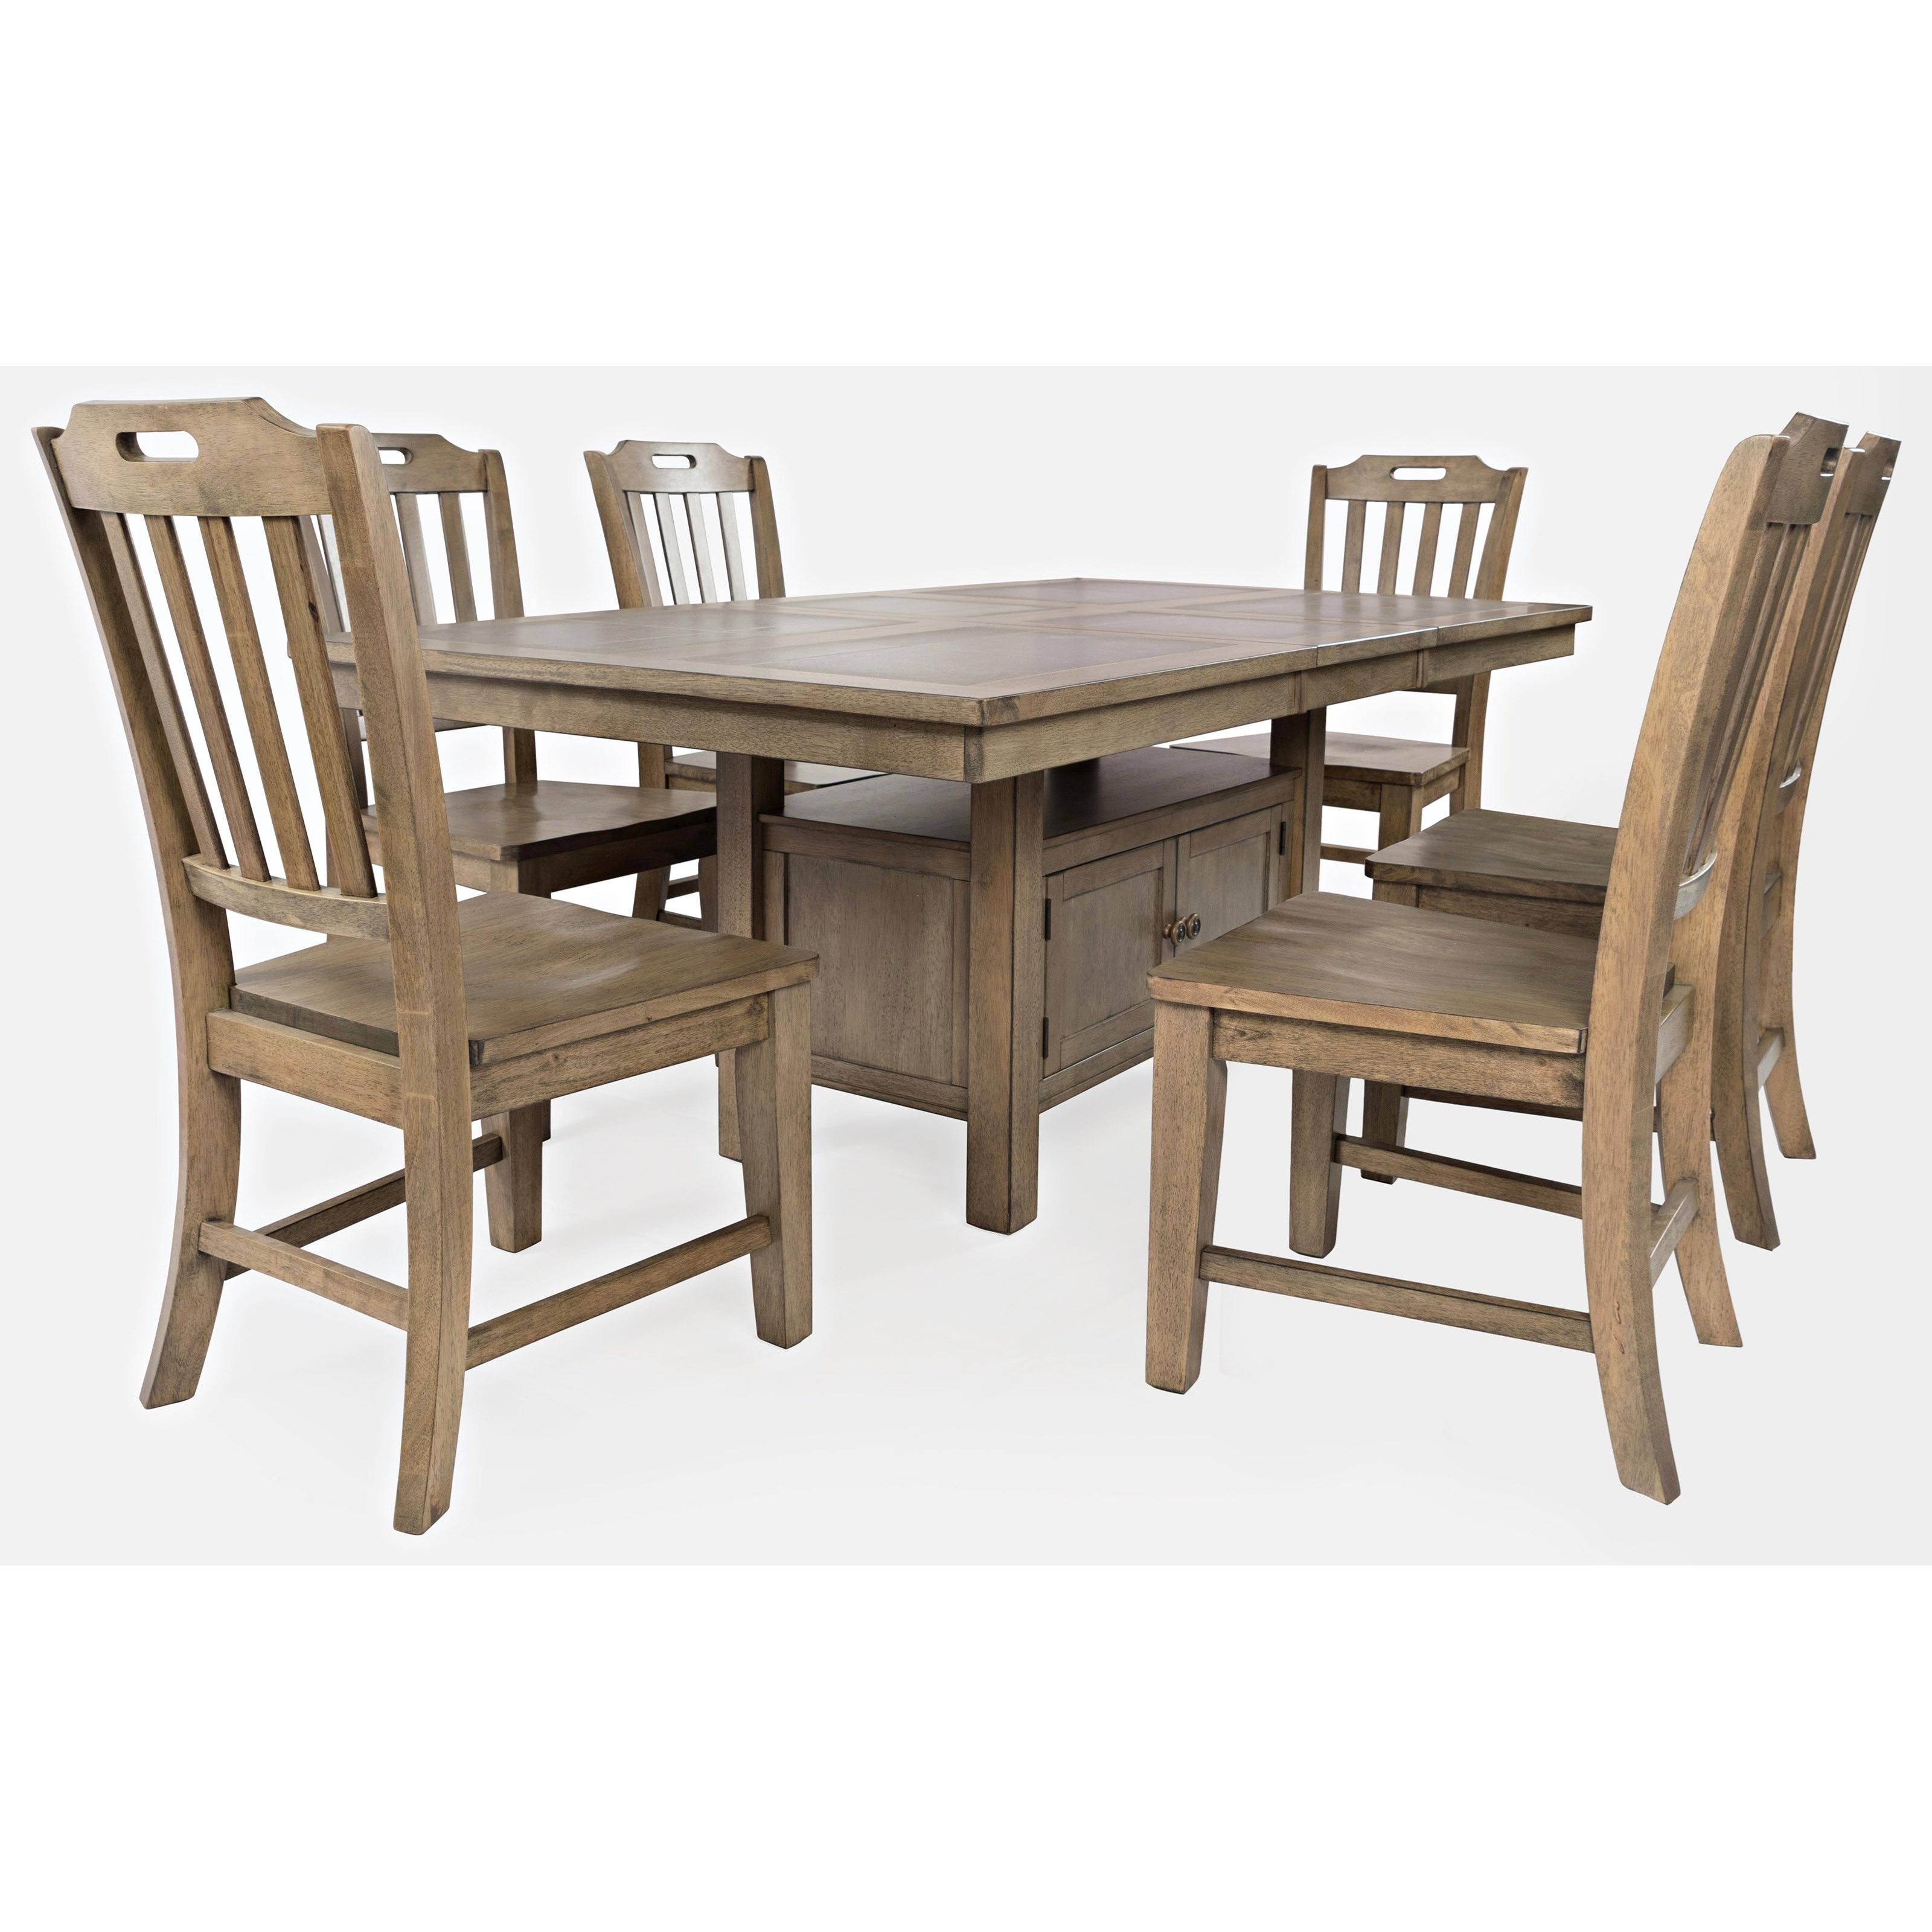 Prescott Park 7-Piece Dining Table and Chair Set by Jofran at Jofran